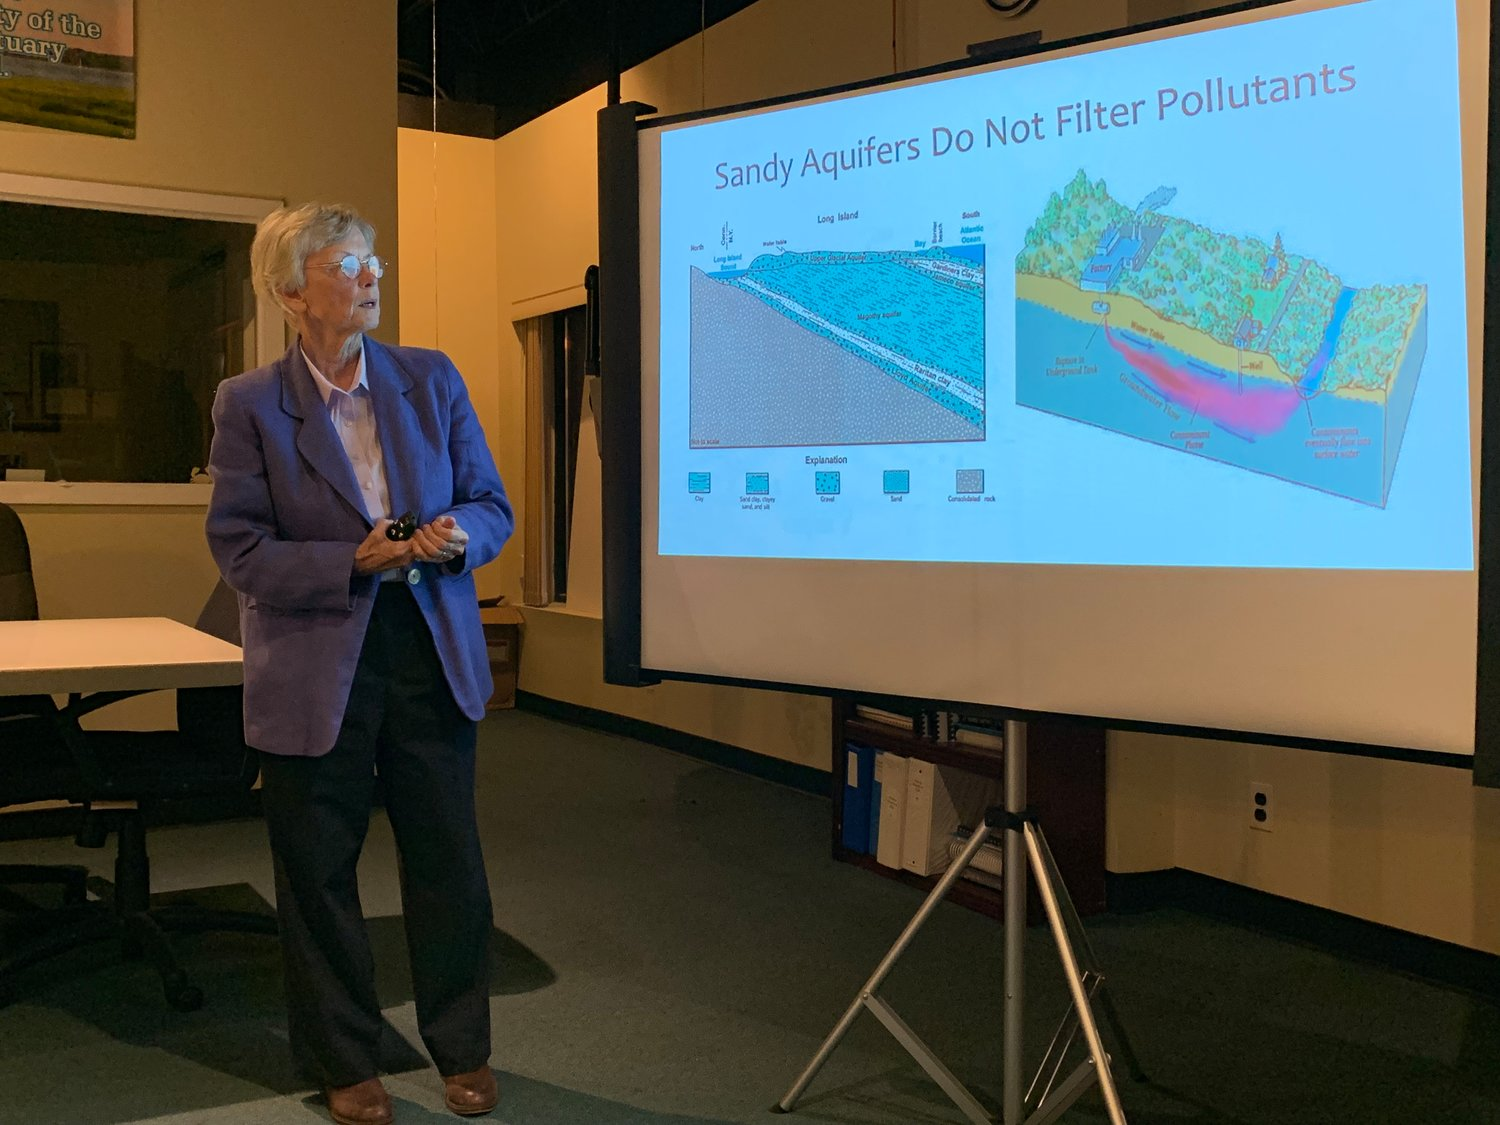 Dr. Sarah Meyland, director of the New York Institute of Technology's Center for Water Resources Management, recently spoke to Friends of the Bay about the dangers of new contaminants in Long Island's groundwater.